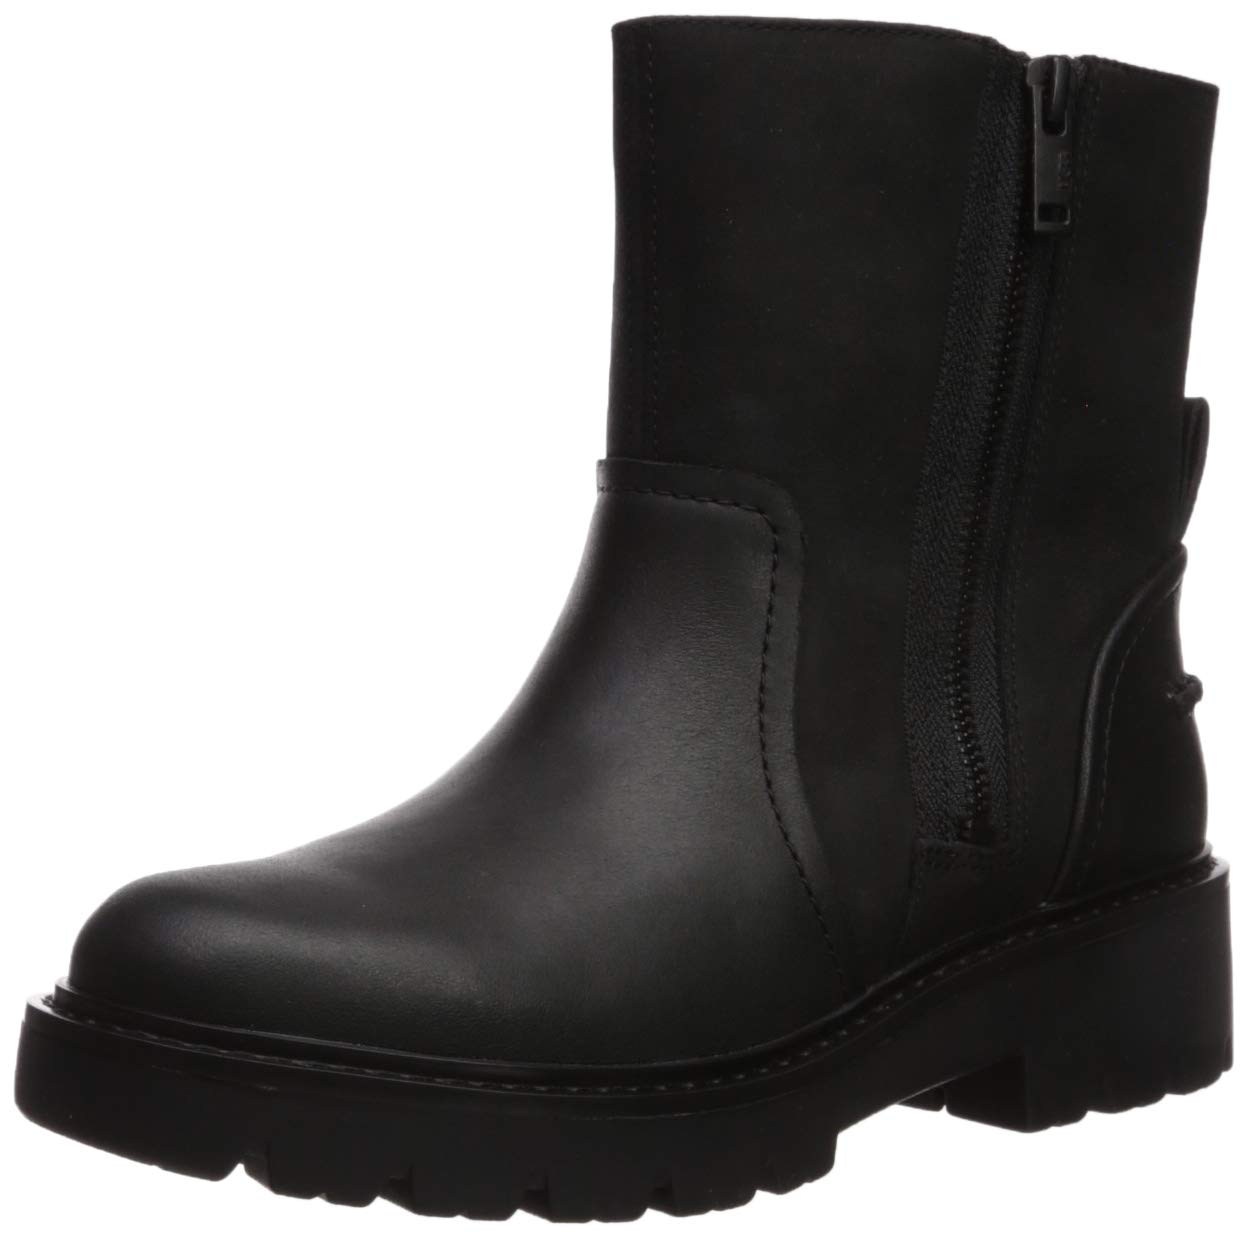 UGG Women's Polk Combat Boot, Black, 7.5 M US 1